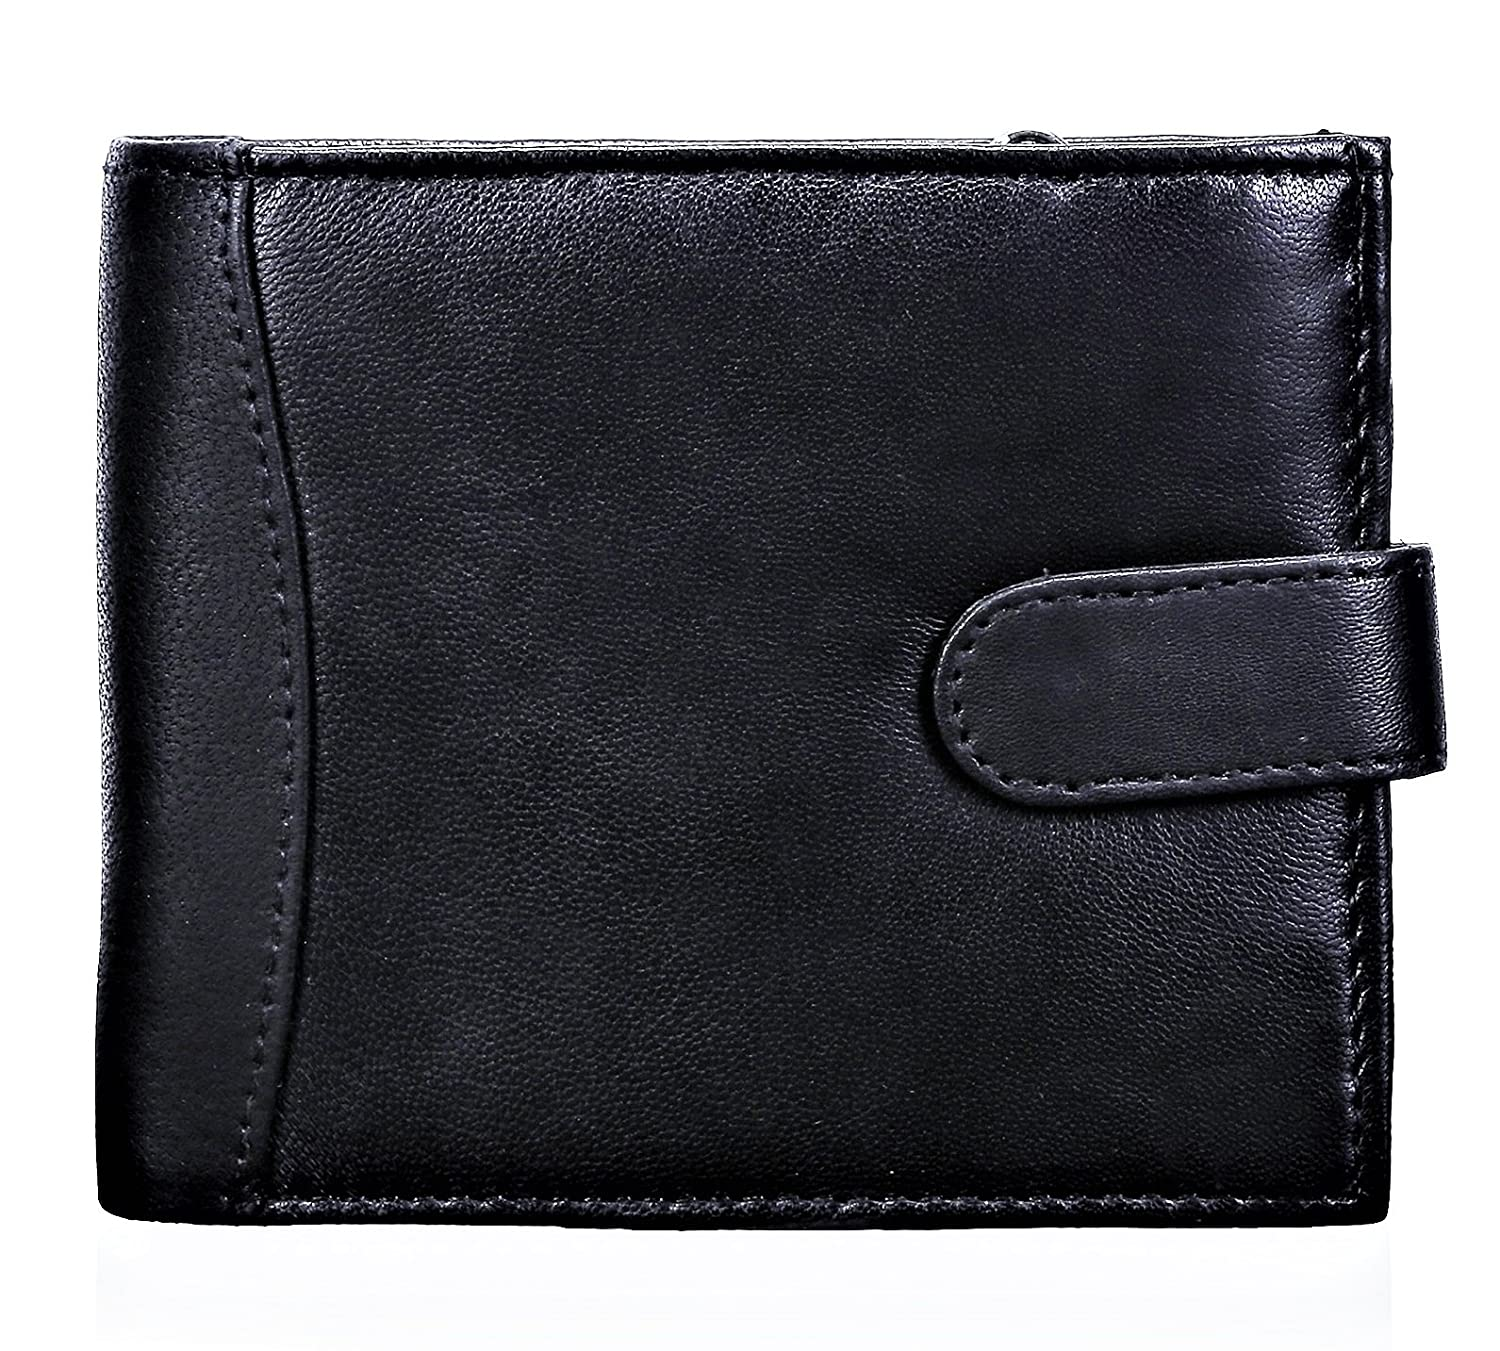 ODS:UKⓇ MENS HIGH QUALITY LUXURY SOFT LEATHER TRI FOLD WALLET CREDIT CARD SLOTS, ID WINDOW AND COIN POCKET (BLACK)